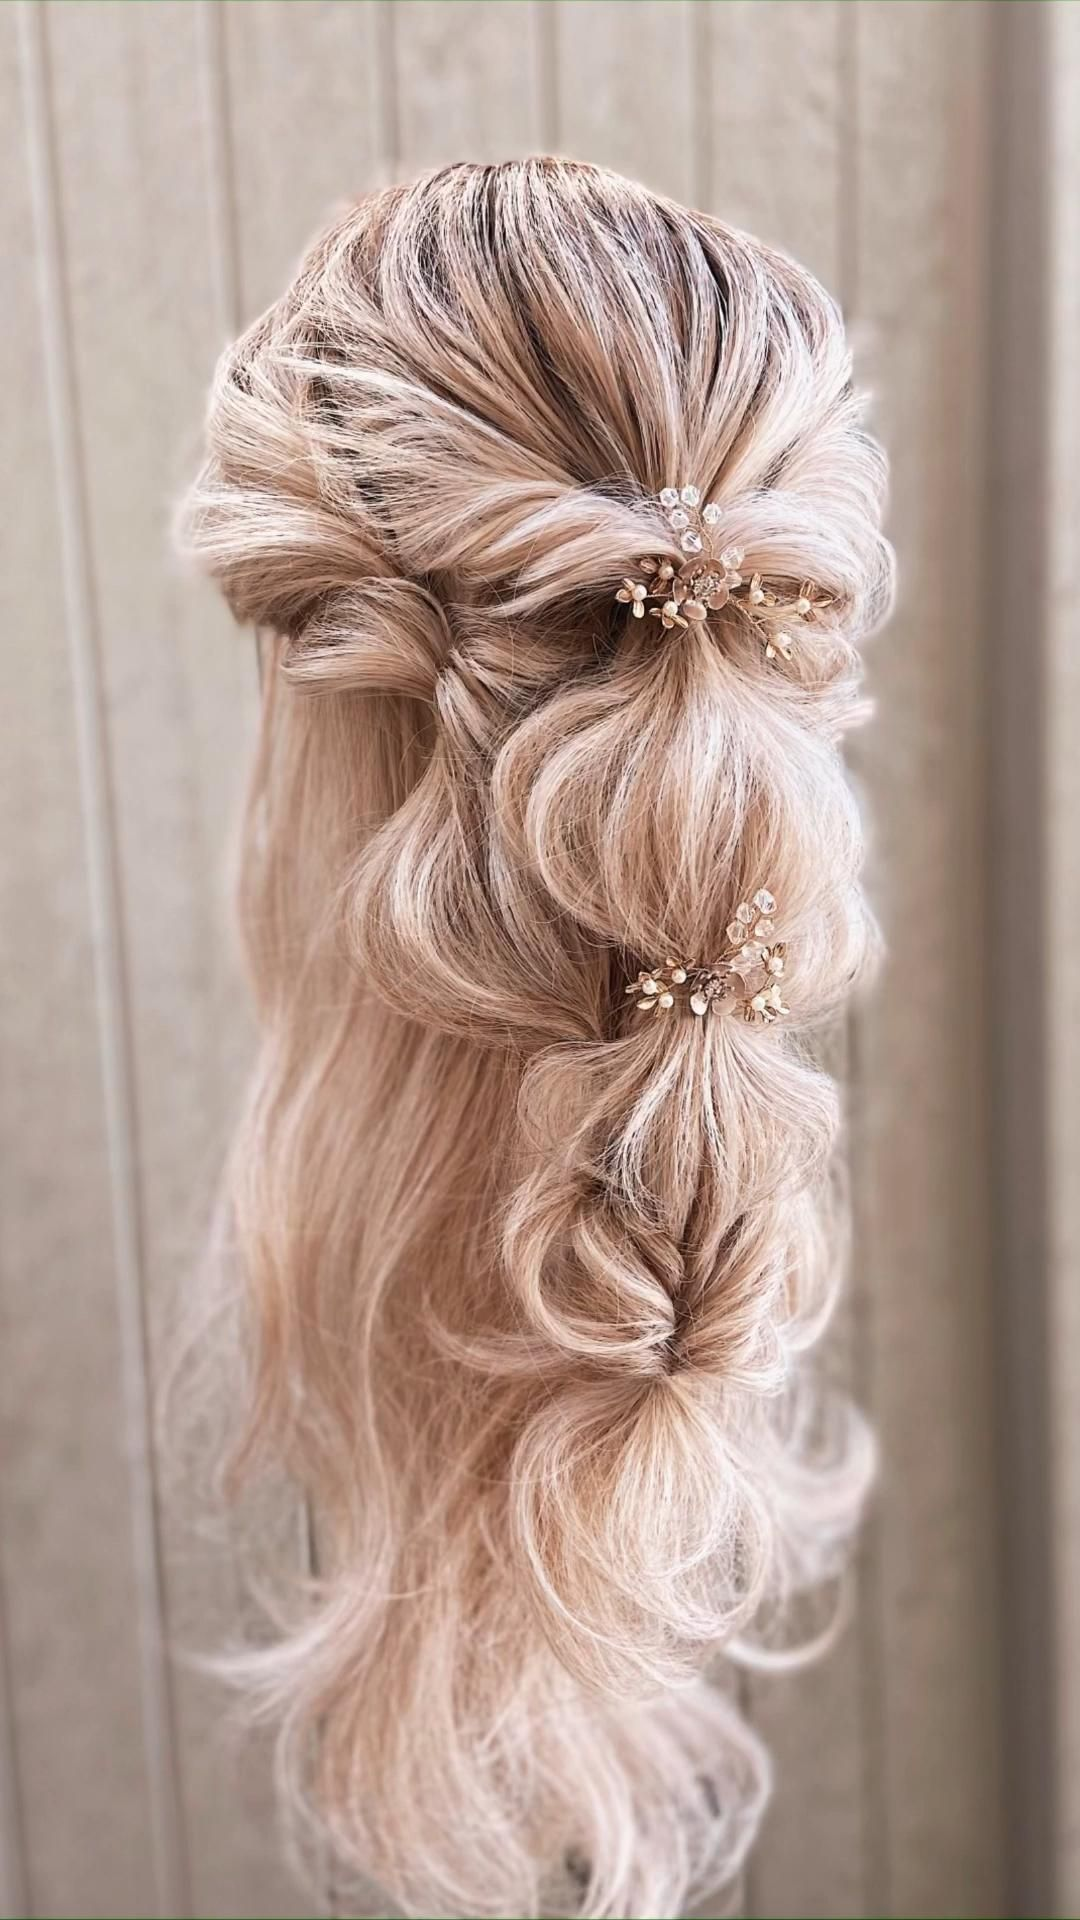 Hair By Kaelyn Christine | romantic bridal hairsty